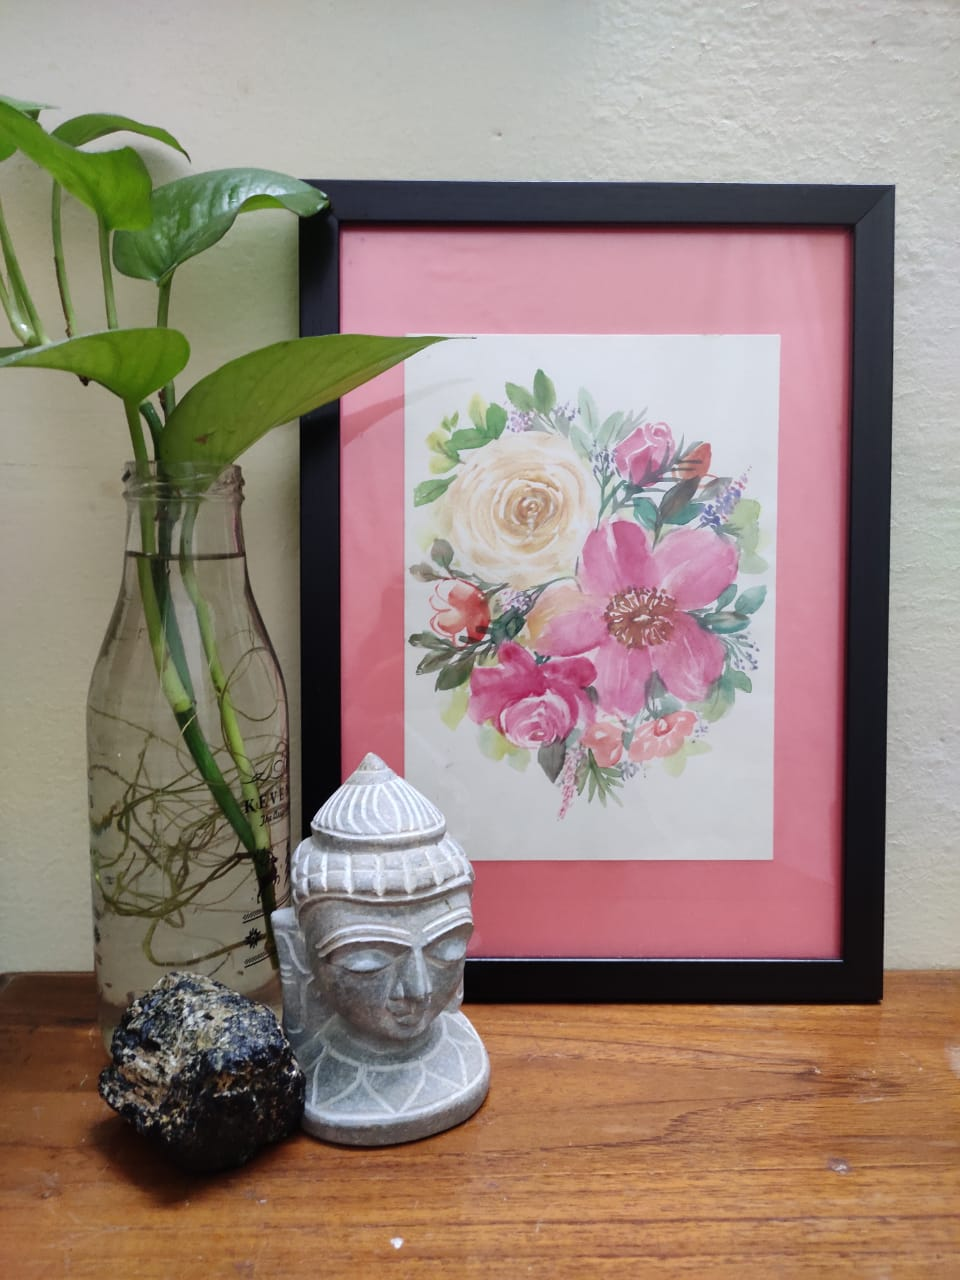 Watercolor floral wall art workshop for Beginners in Bangalore